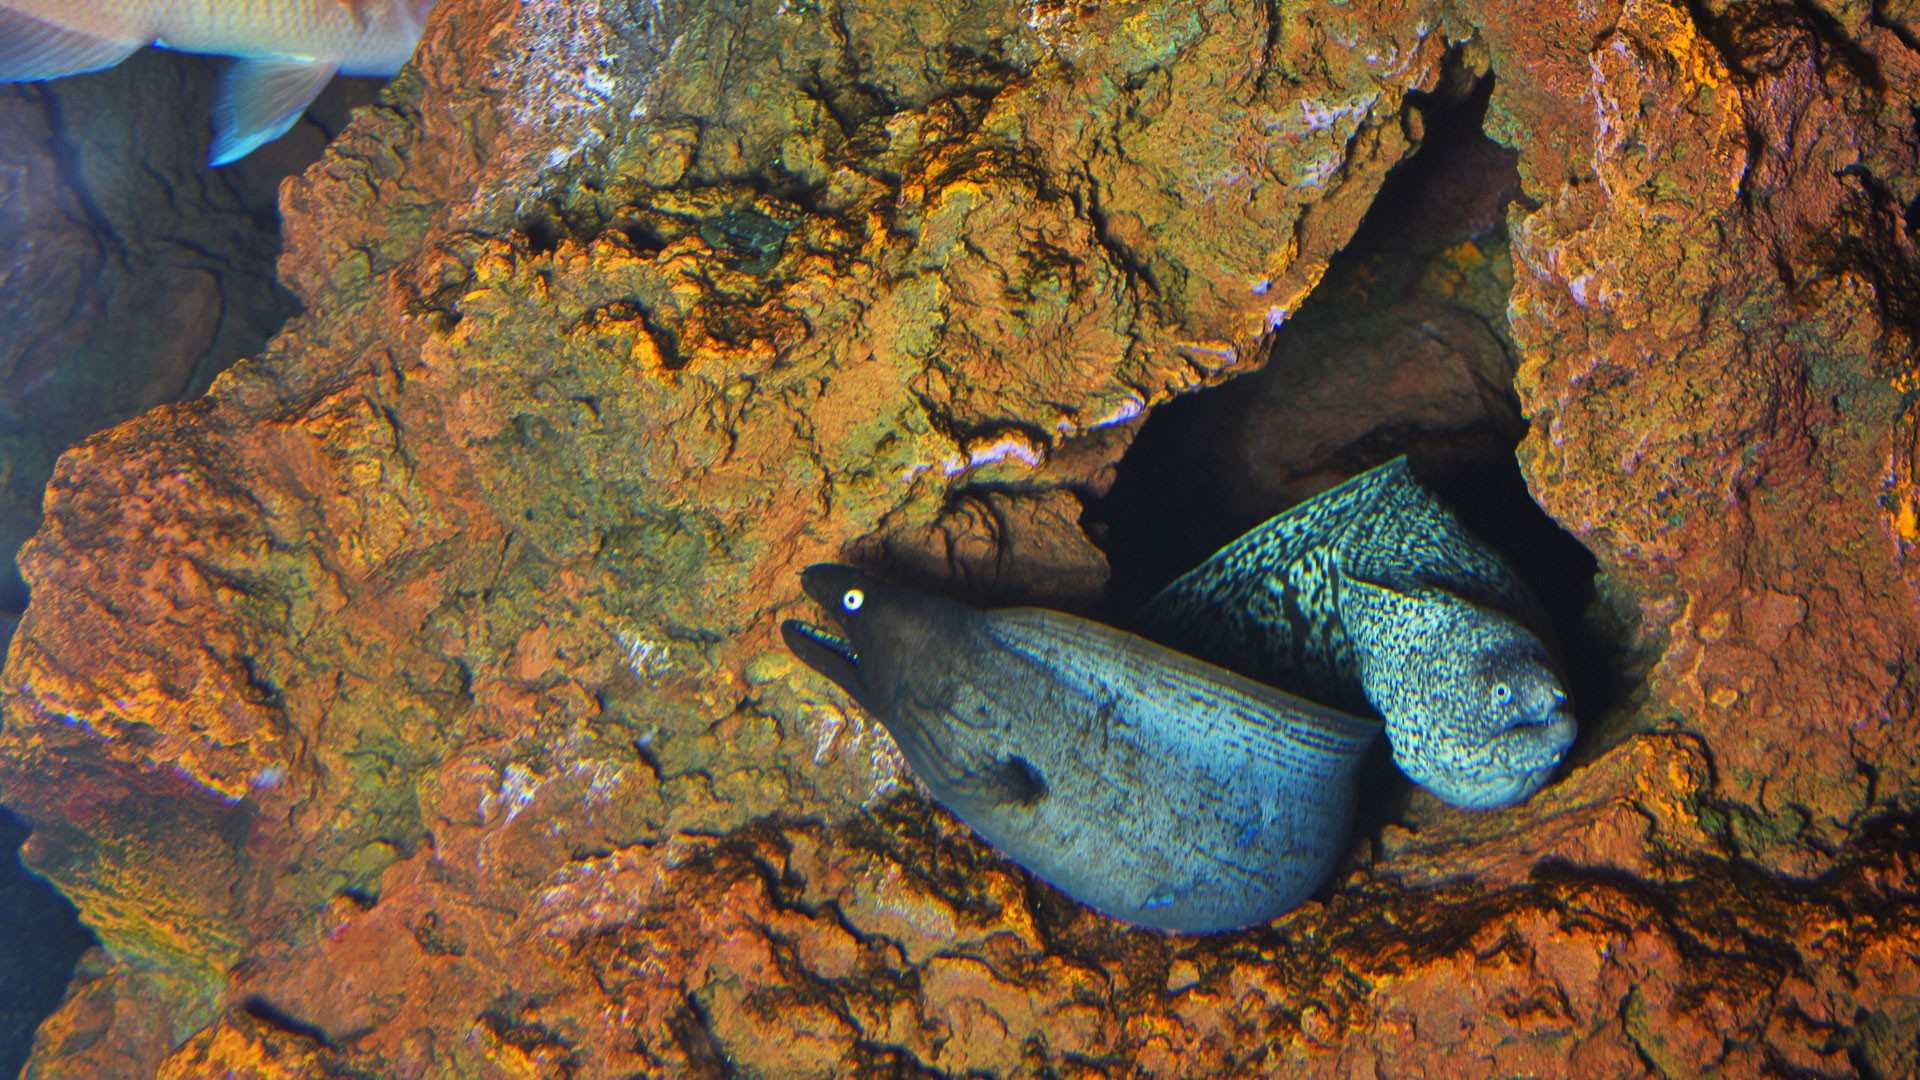 Black moray eel